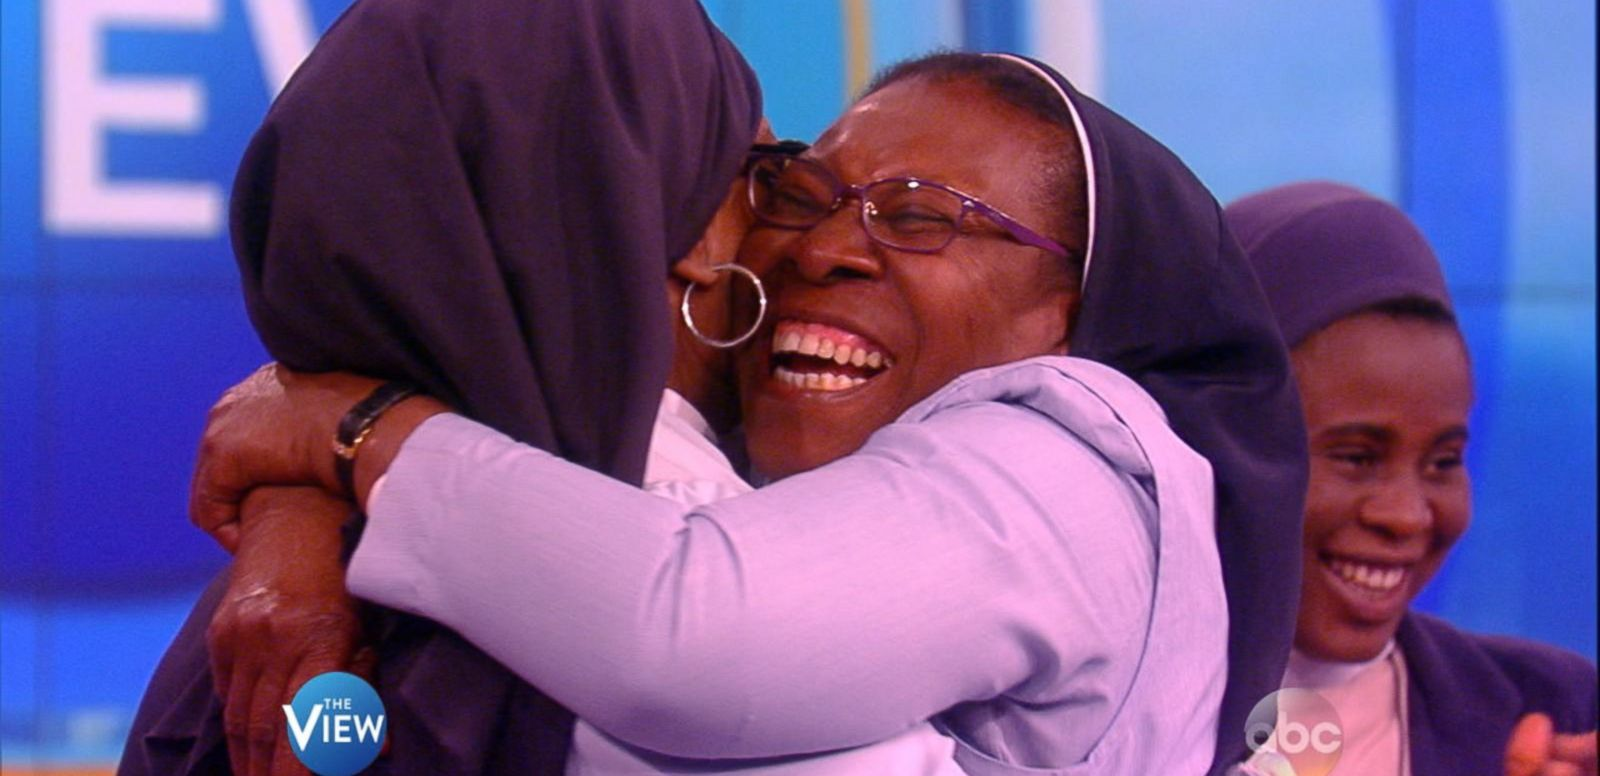 VIDEO: Whoopi Goldberg Pulls Off 'Sister Act' Surprise for Deserving Nuns